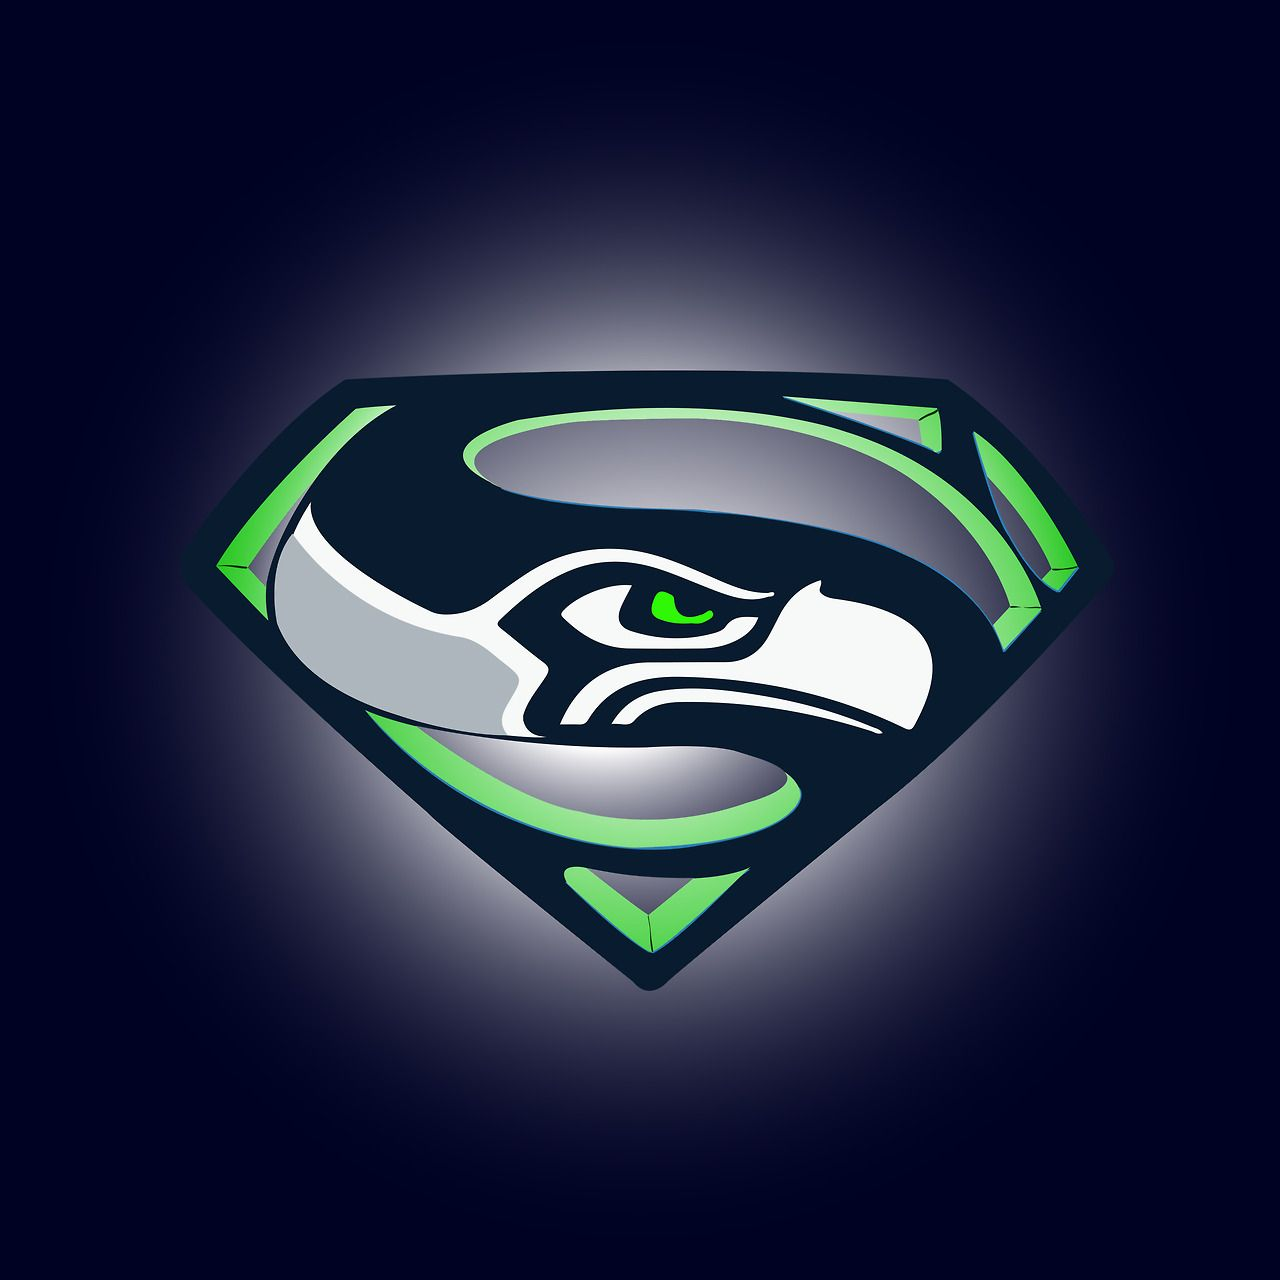 New seahawks logo combined the seahawks logo with the superman new seahawks logo combined the seahawks logo with the superman logo since both logos biocorpaavc Image collections